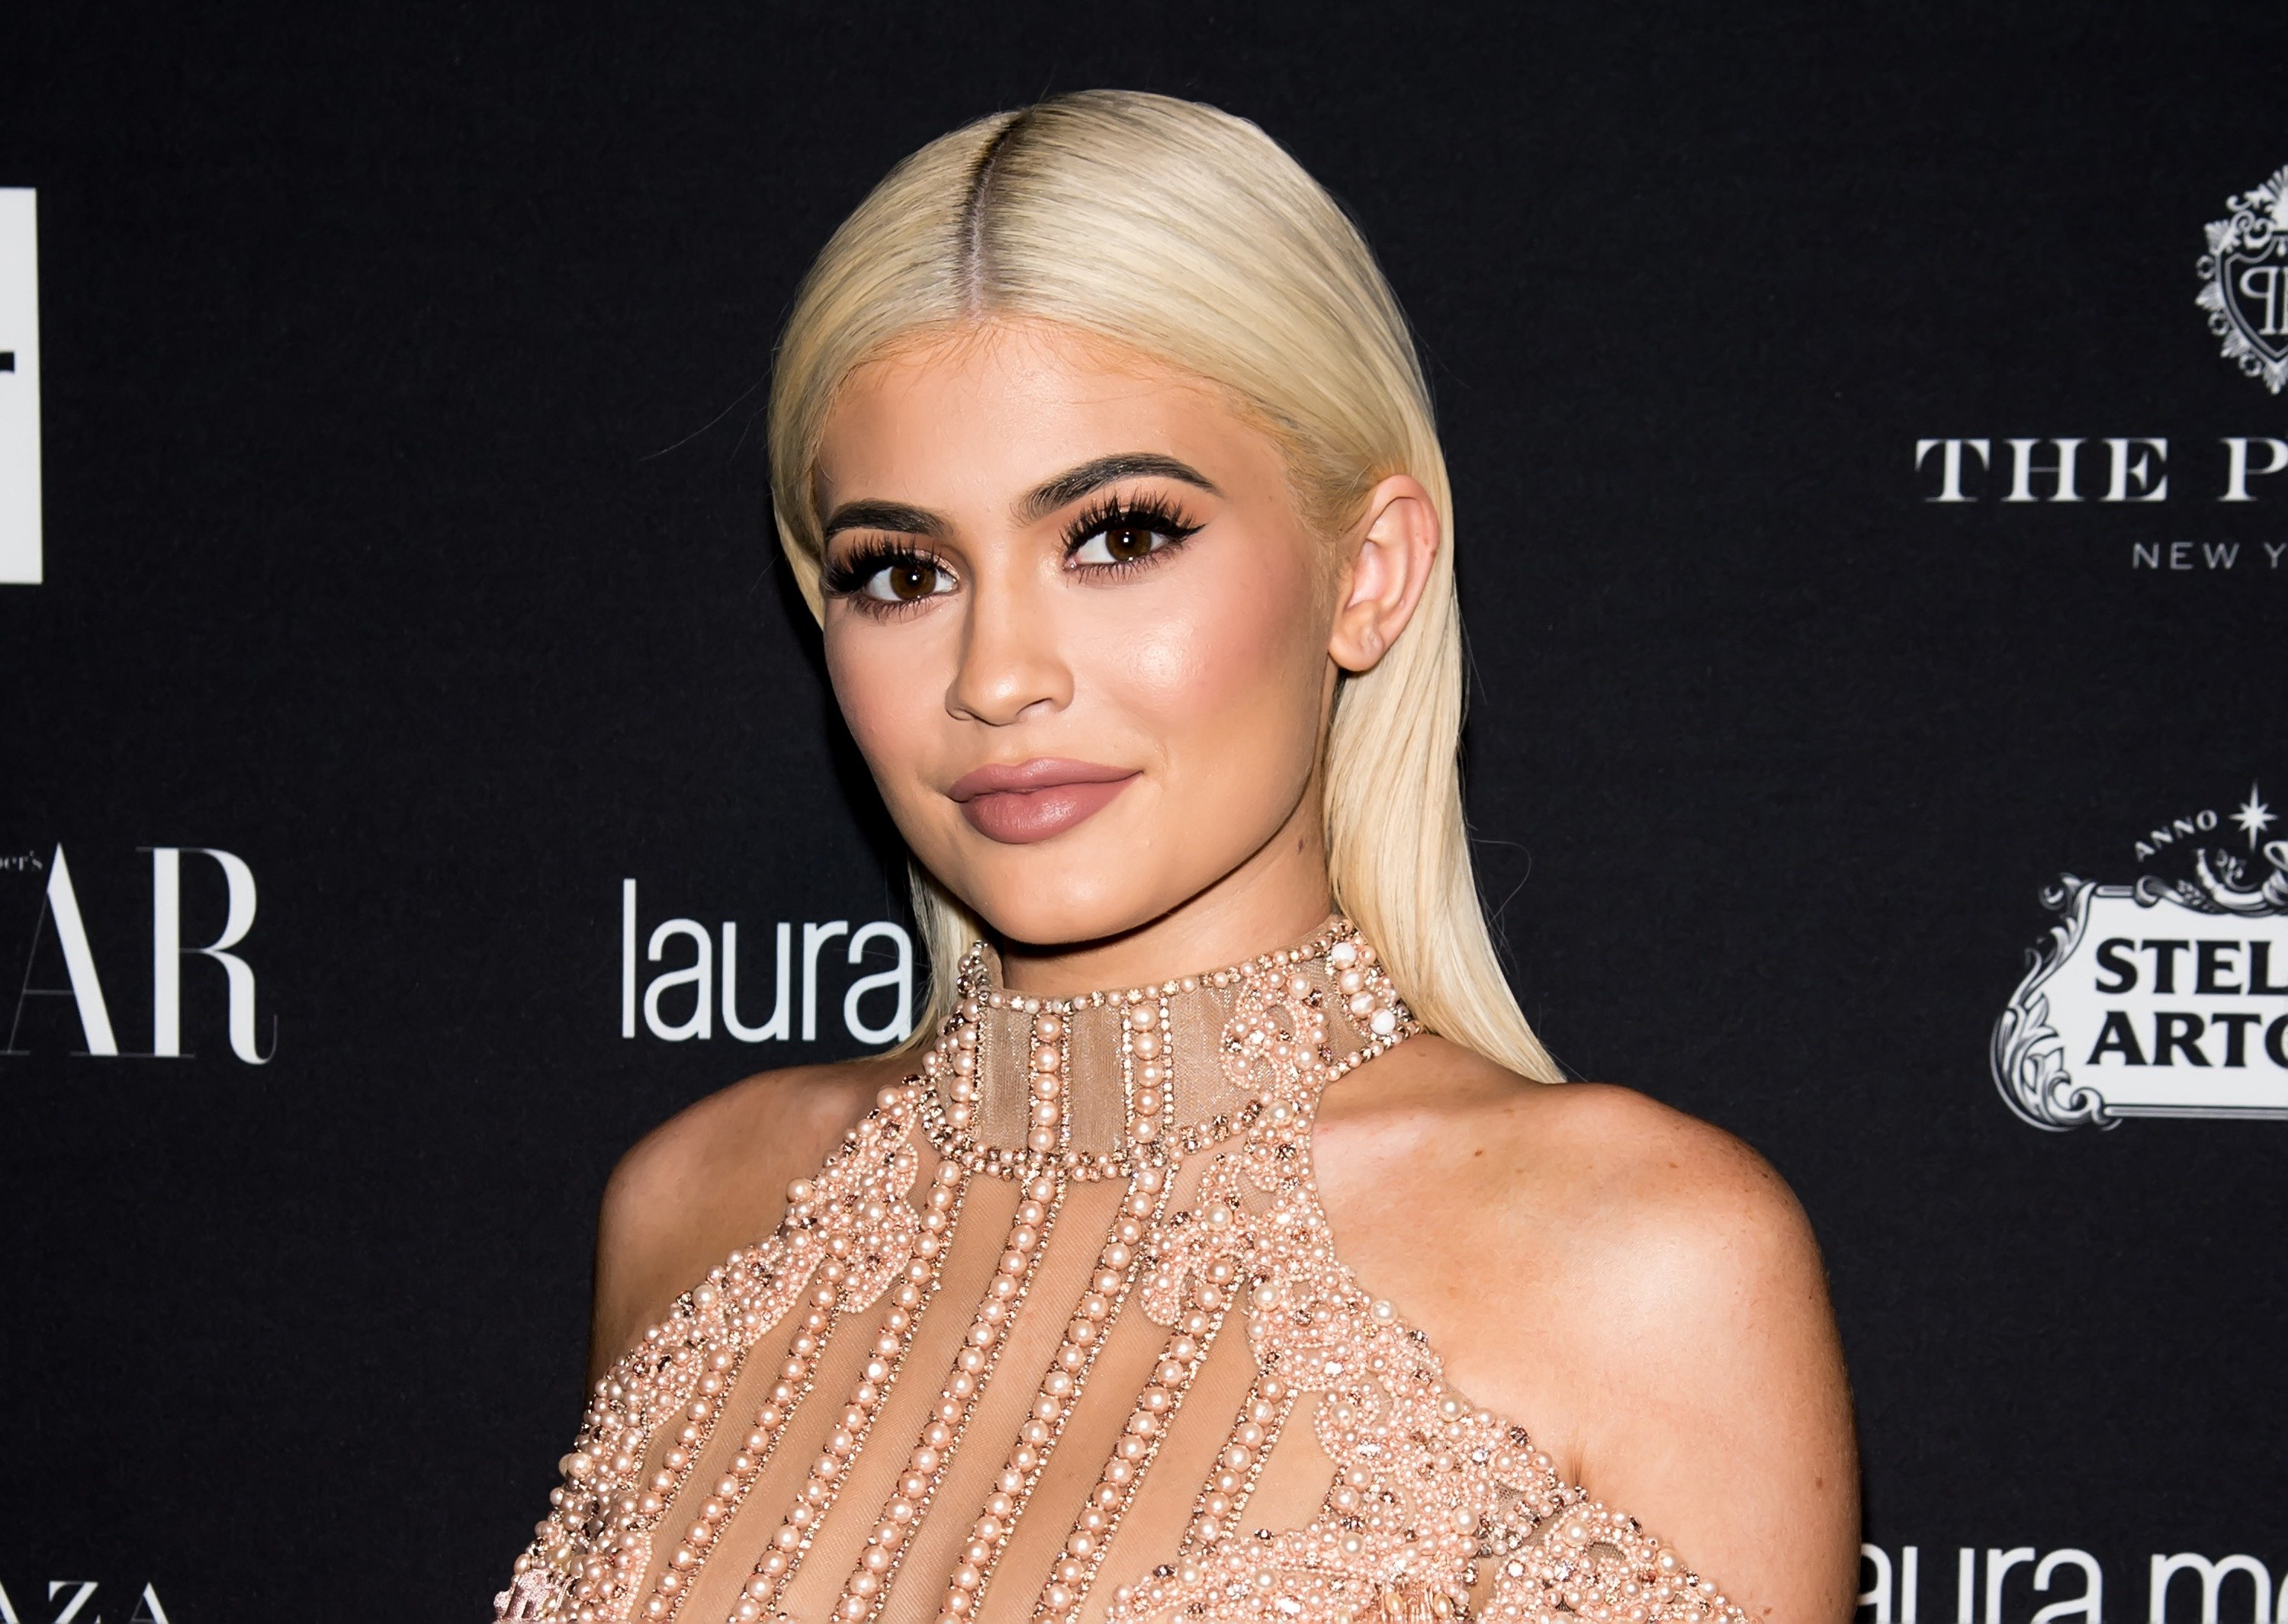 """Kylie Jenner attends Harper's Bazaar's """"ICONS By Carine Roitfeld"""" at The Plaza Hotel on September 9, 2016. 